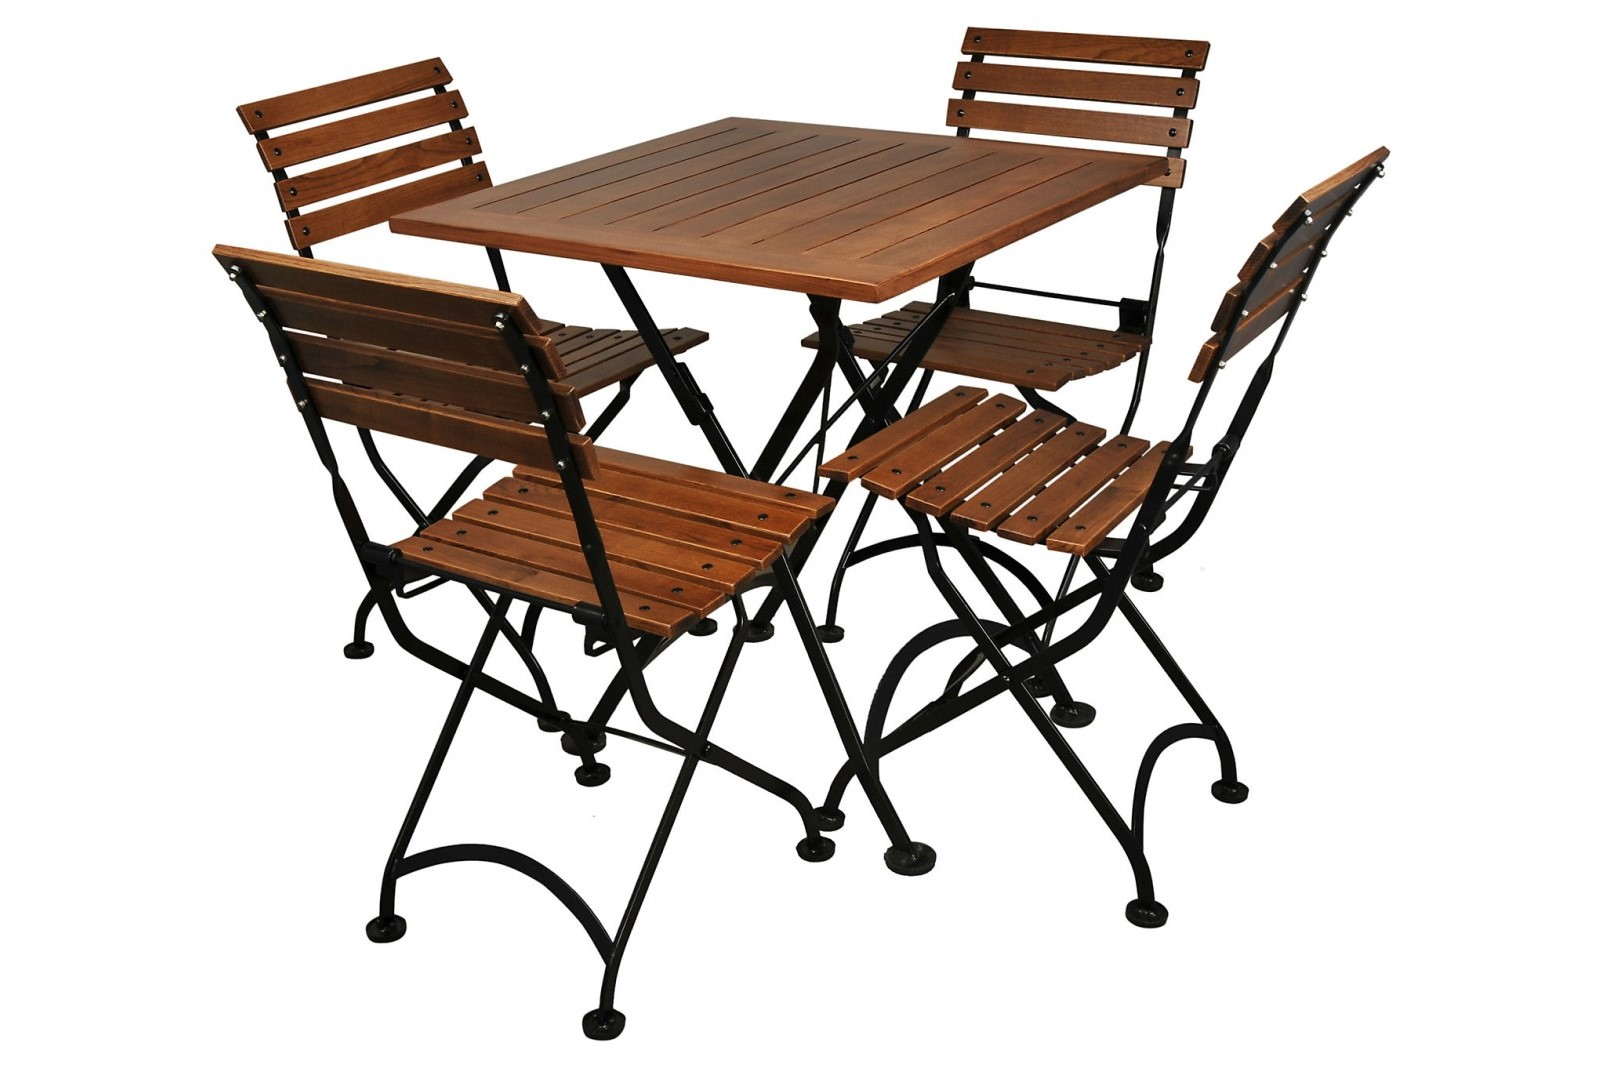 4113CW-BK European Chestnut dining table and 5504CW-BK chairs